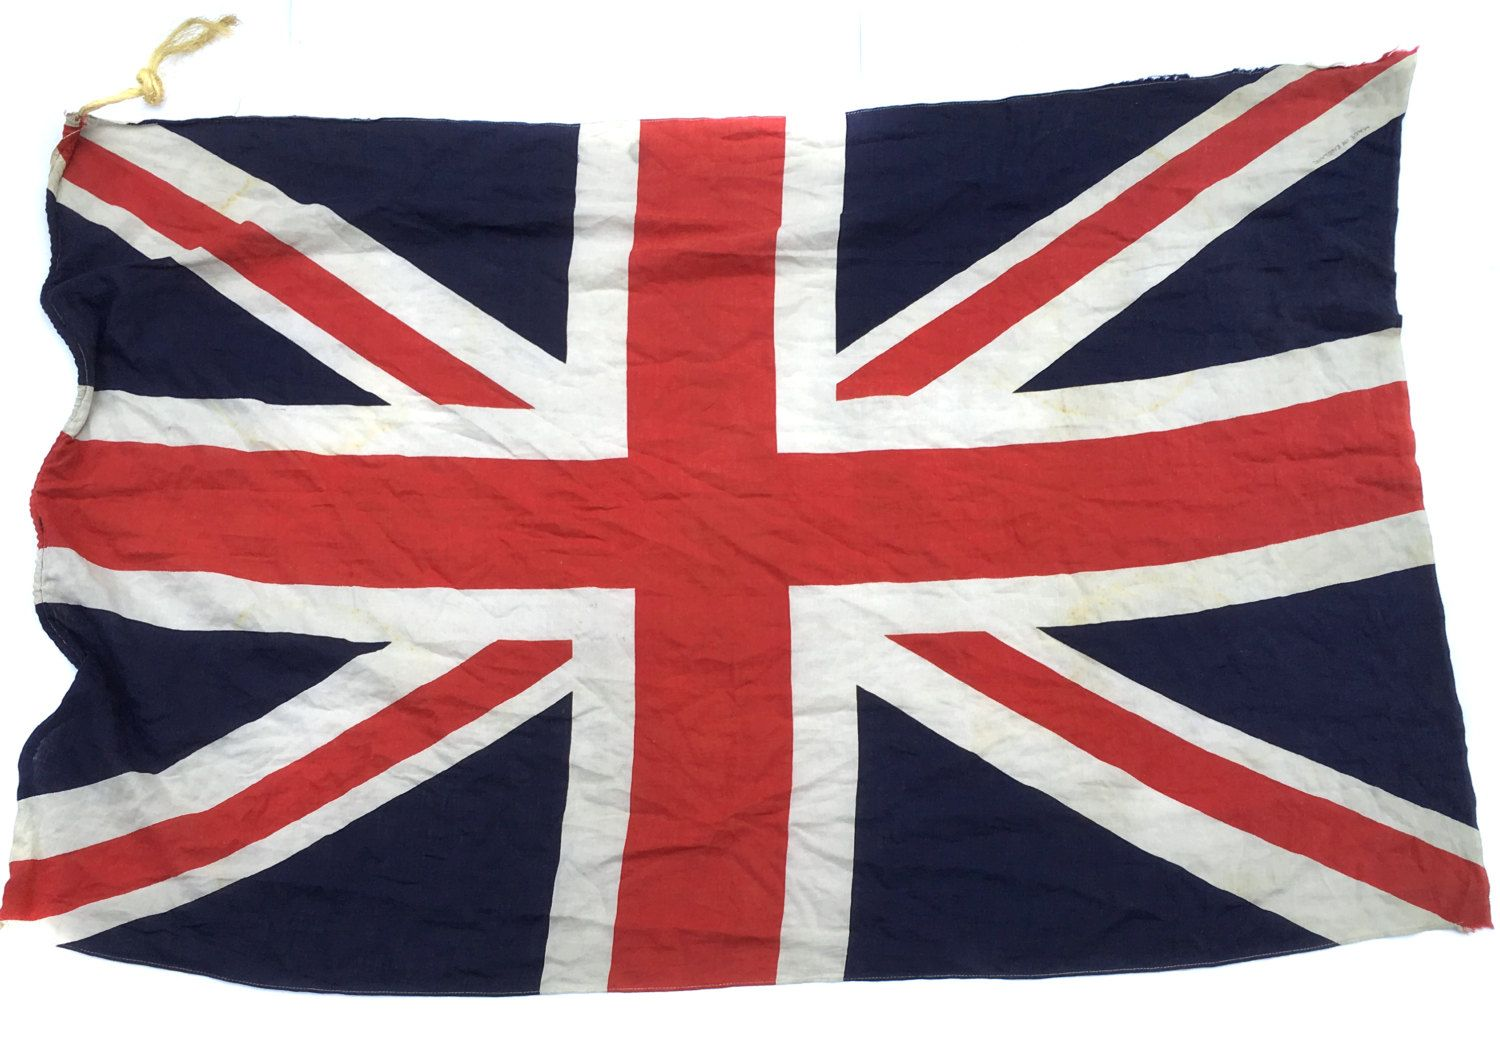 6145294a5a1f 1940s British Cloth Military Union Jack Made in England Vintage Flag WWII Union  Jack World War II Flag Antique Flag by BiminiCricket on Etsy